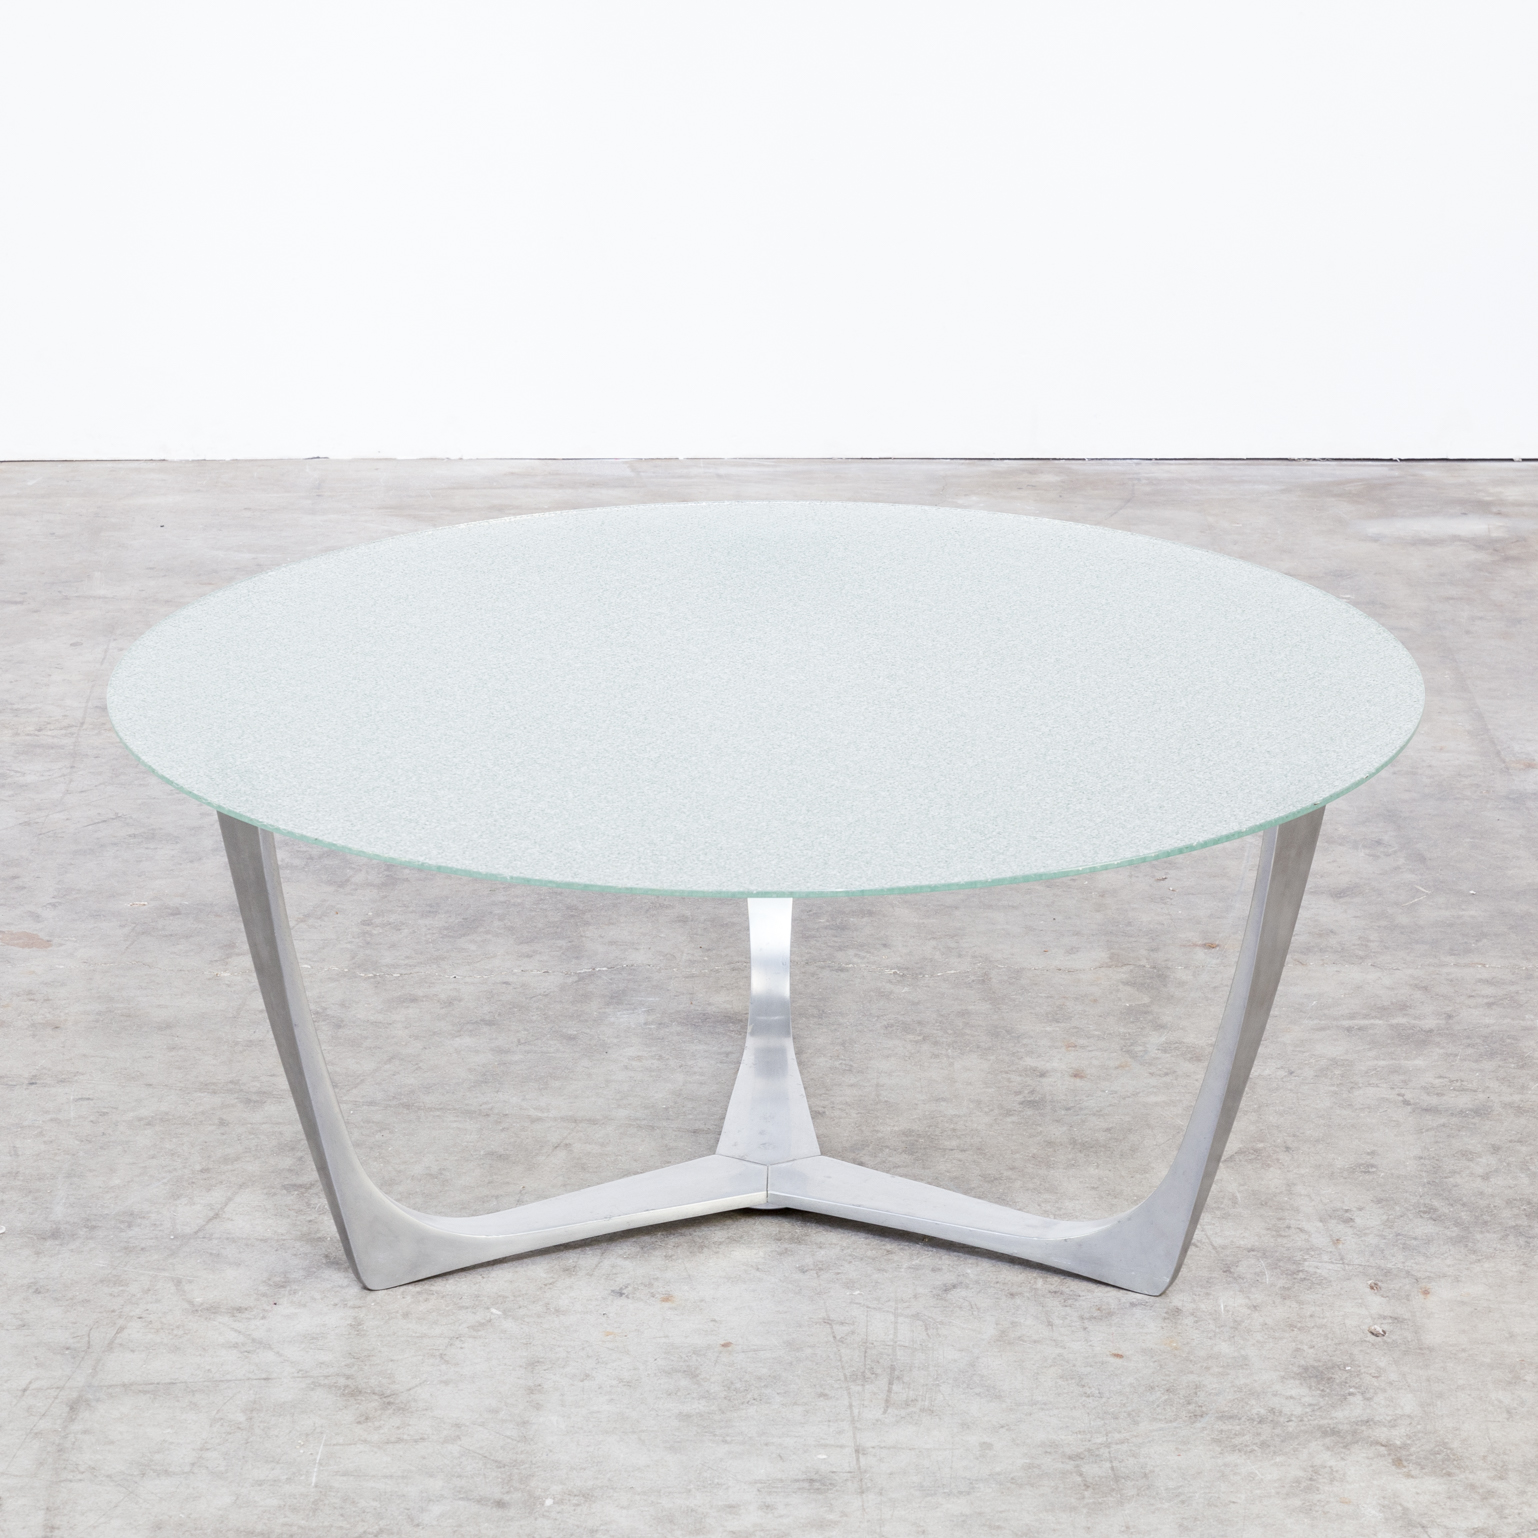 Wire Frame Coffee Table.80s Solid Aluminium Frame Coffee Table Wire Glass Tabletop